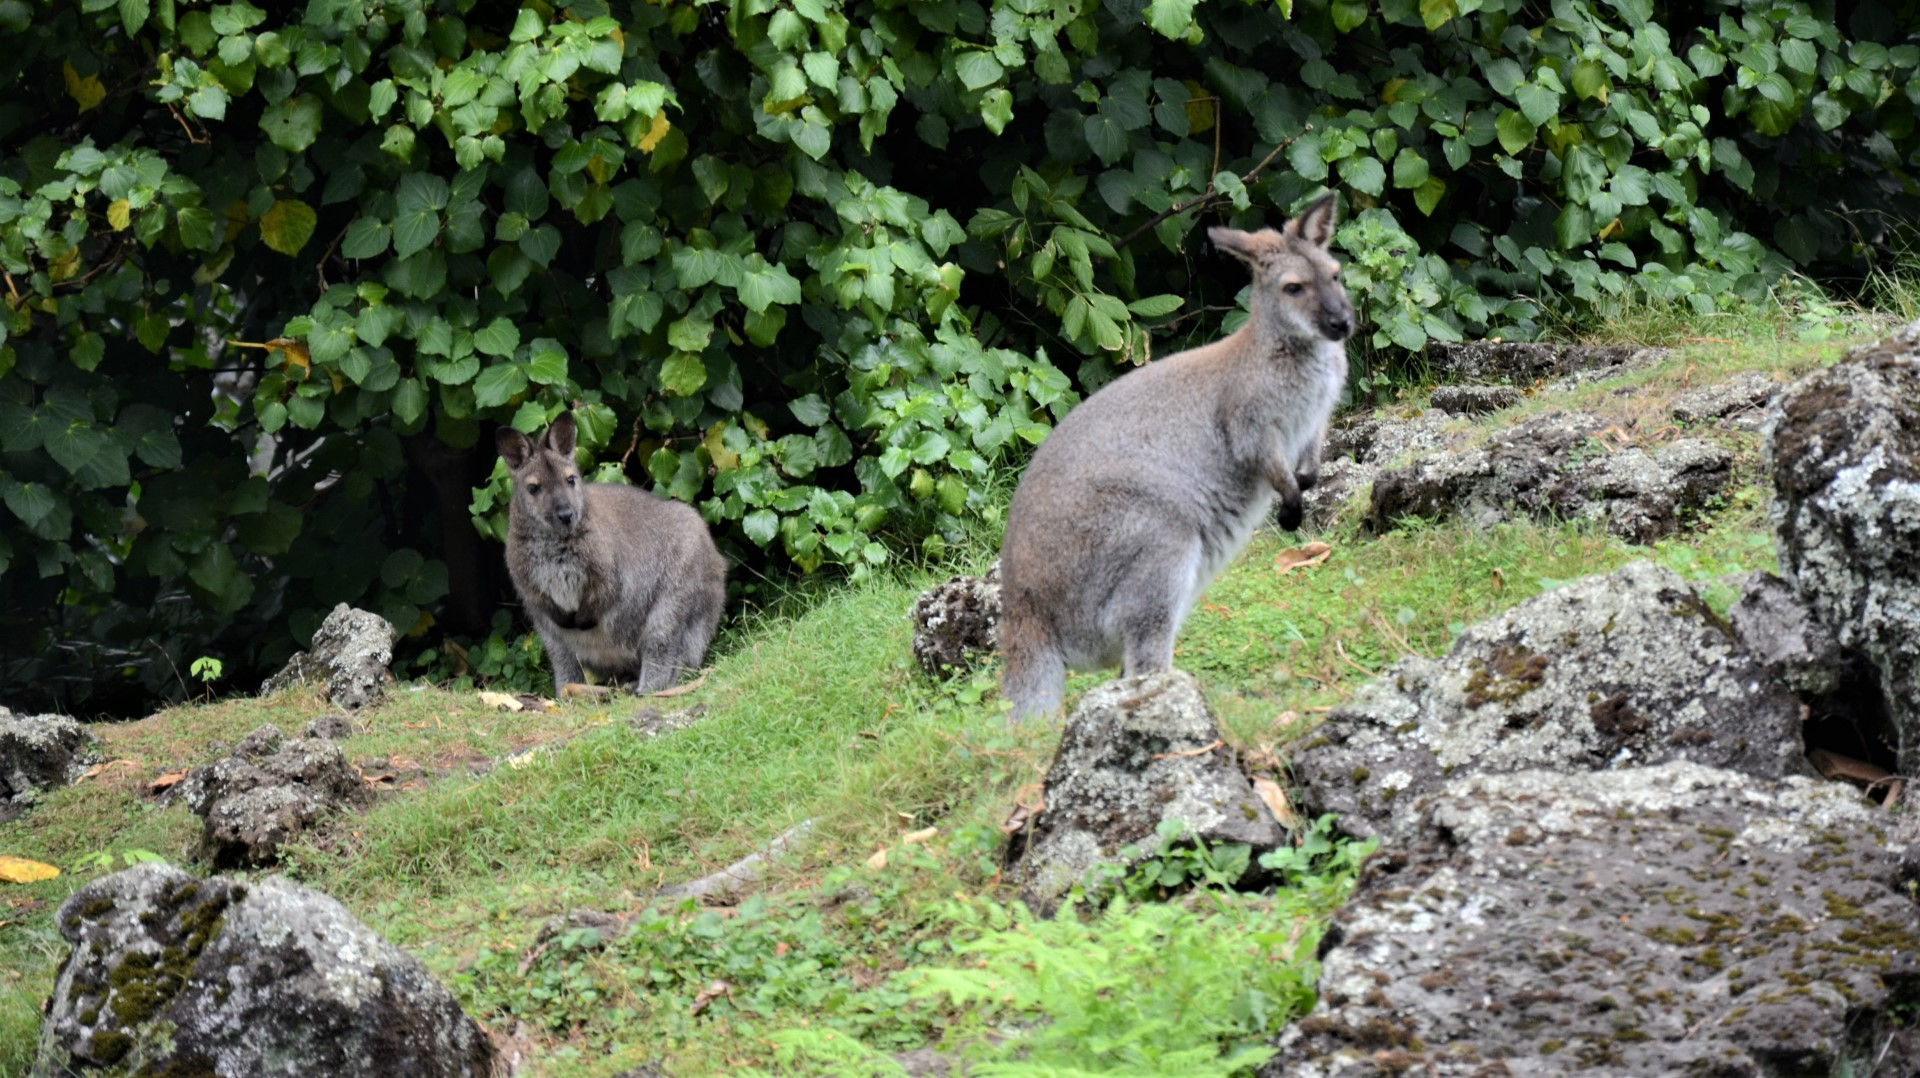 https://rfacdn.nz/zoo/assets/media/wallabies-on-grass-gallery.jpg